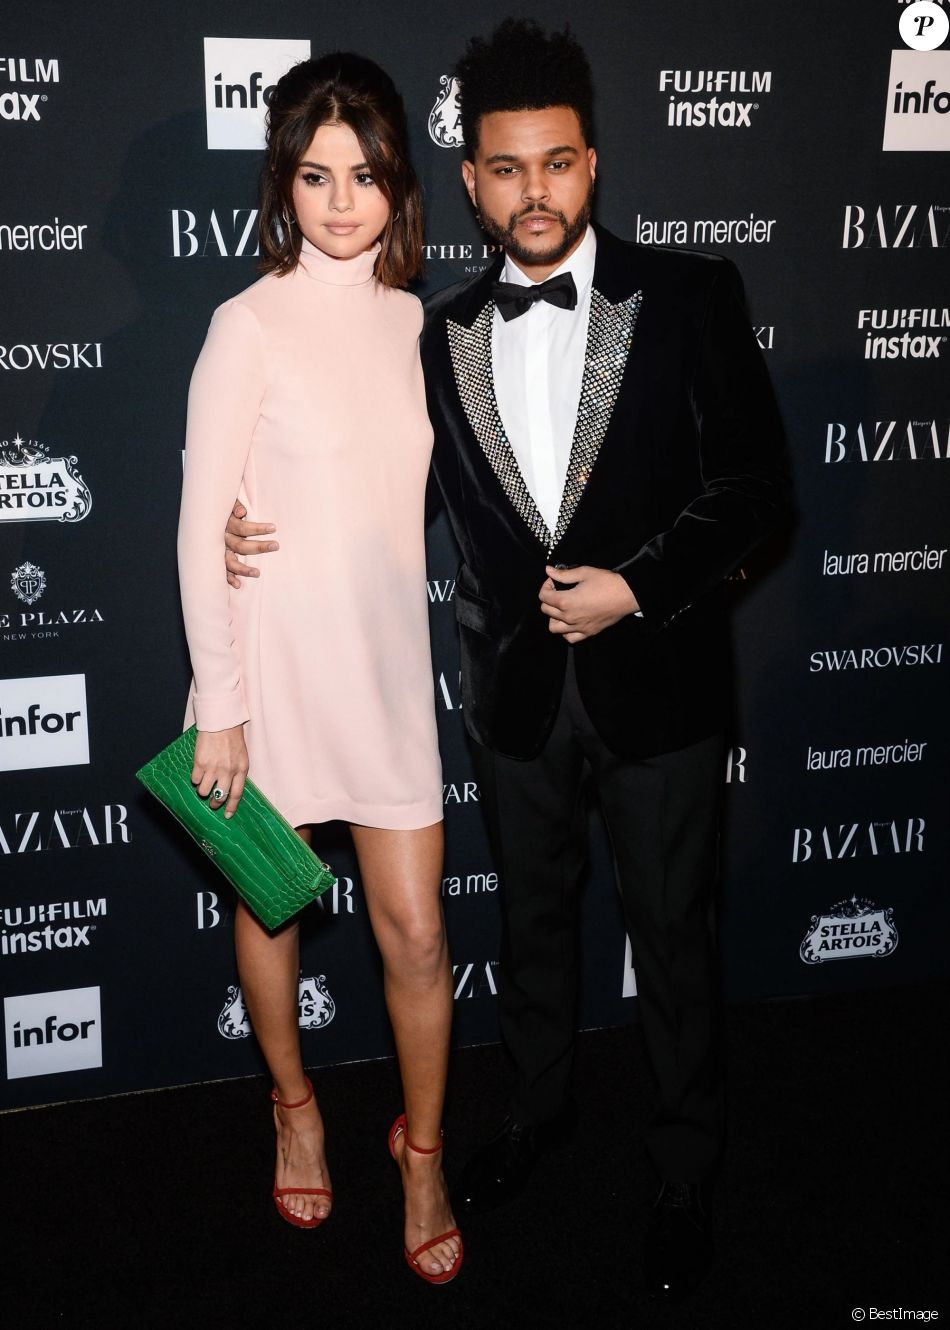 SELENA GOMEZ AND THE WEEKND AT HARPER'S BAZAAR ICONS BY CARINE ROITFELD